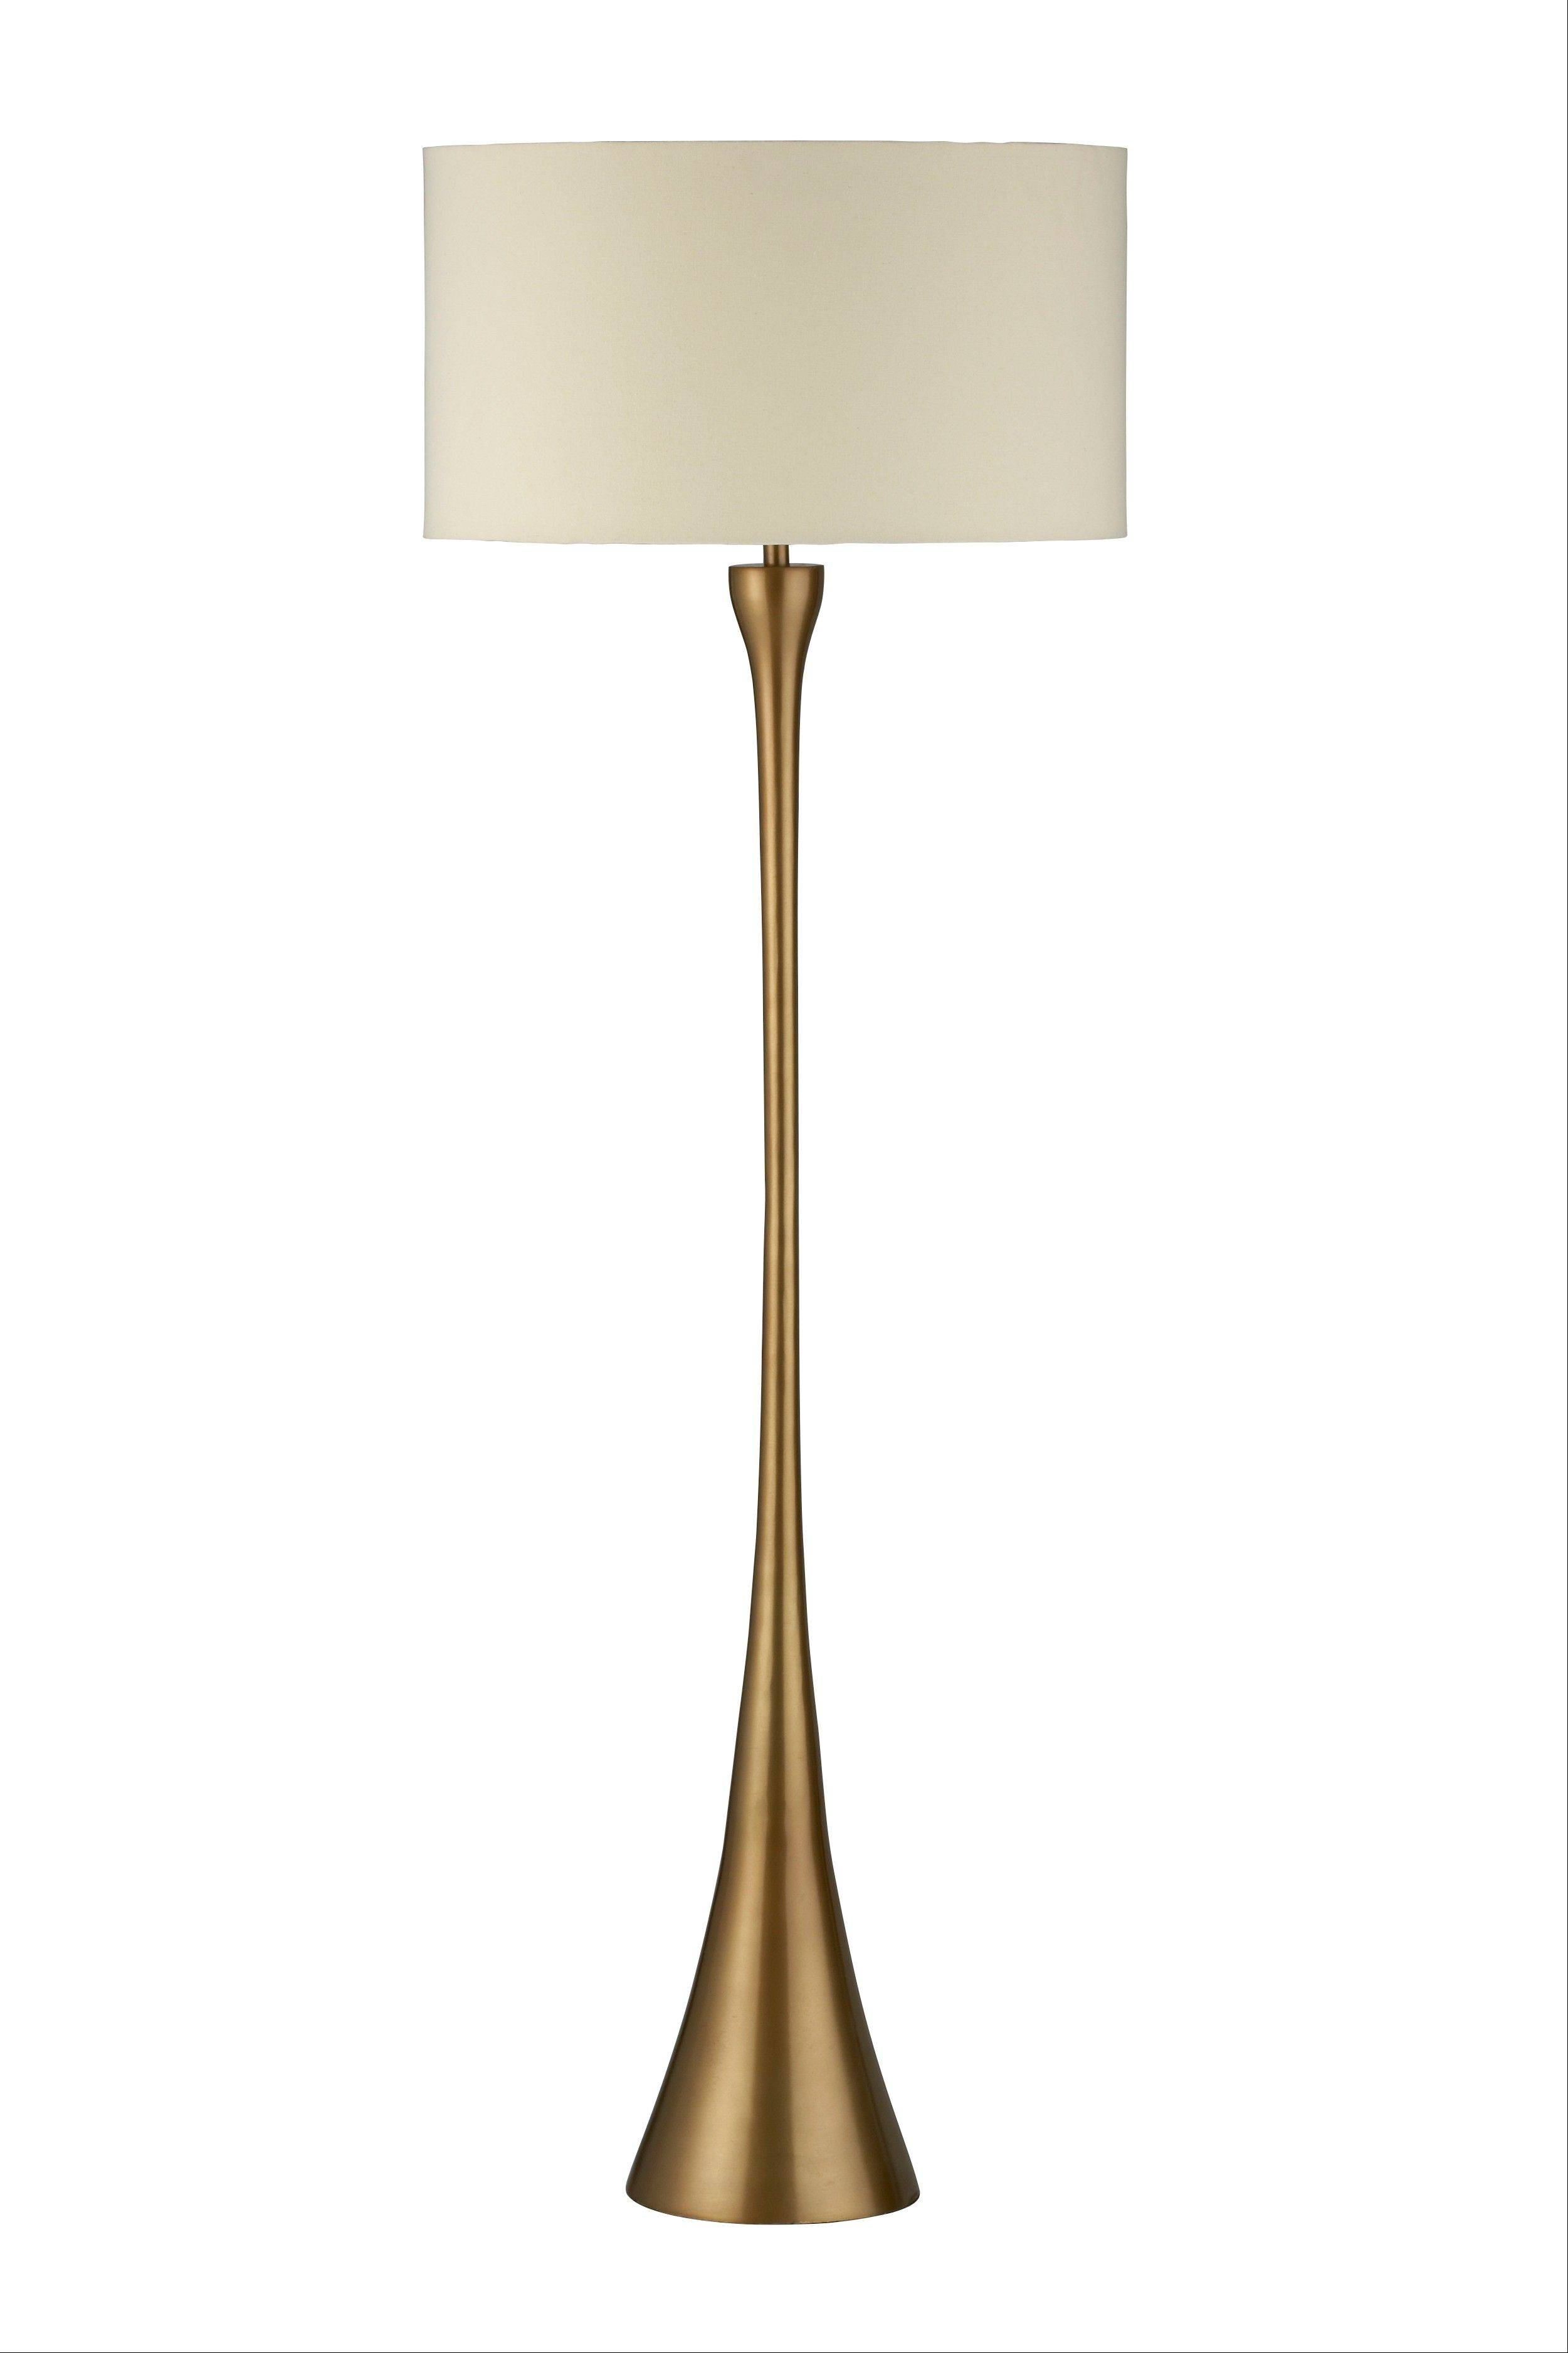 The Melrose floor lamp lights up elongated midcentury curves with an updated matte brass base and a cream canvas drum shade.